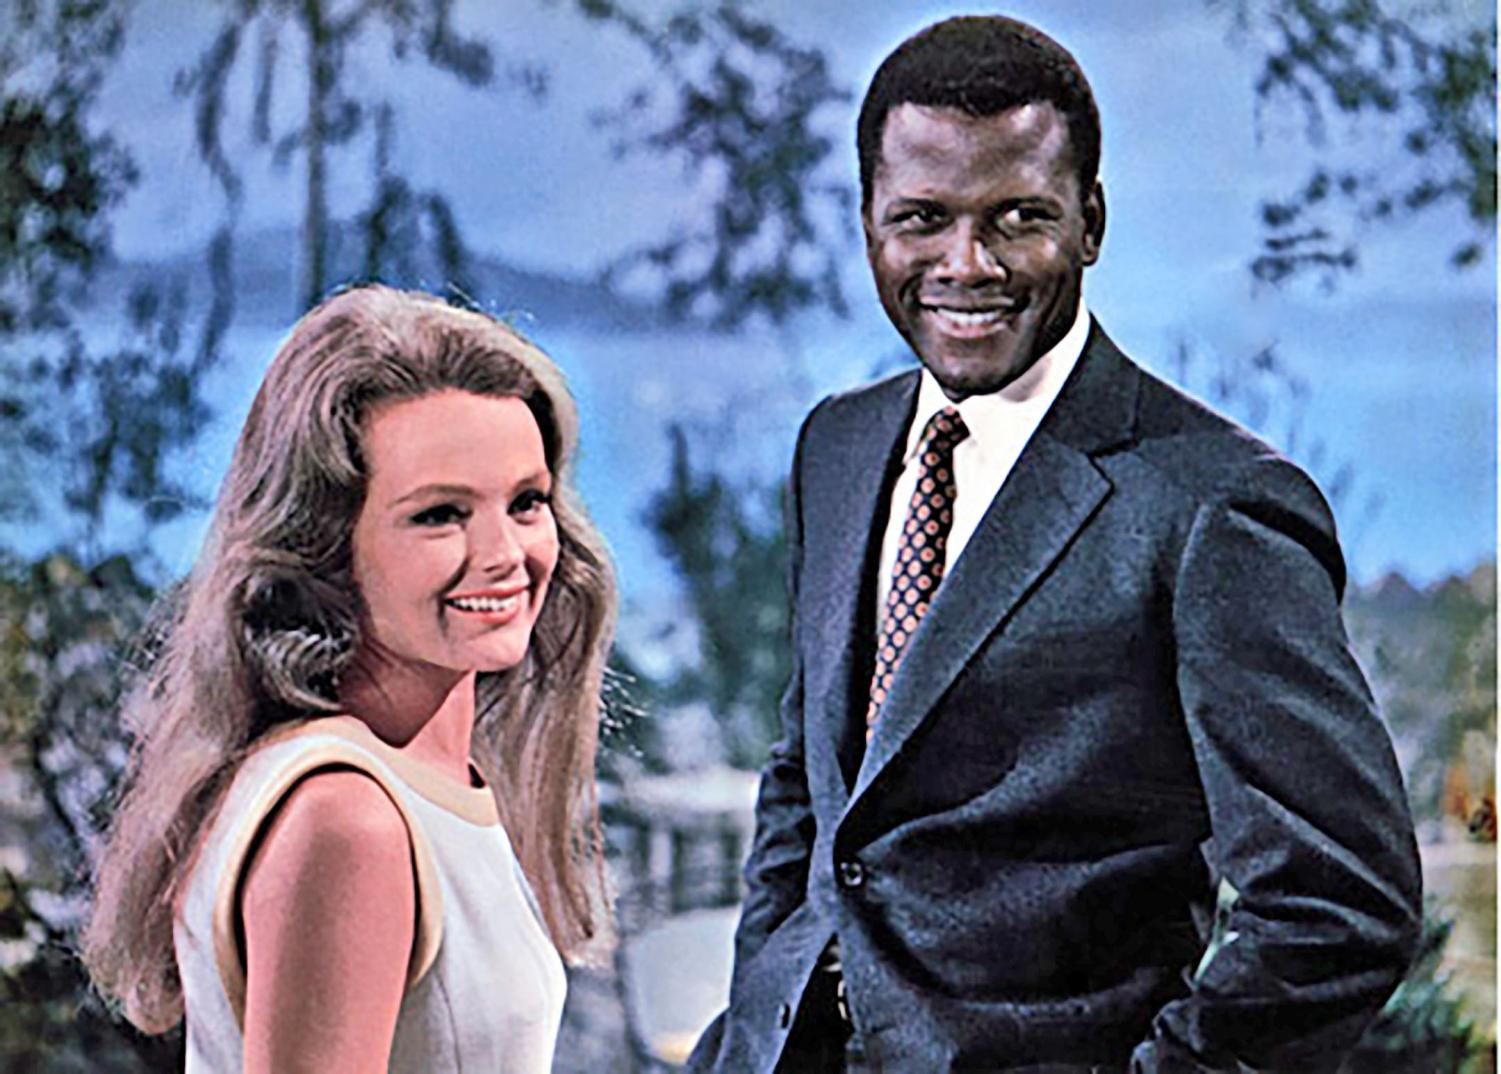 Producer Stanley Cramer created the film in 1967 despite tension around interracial relationships.